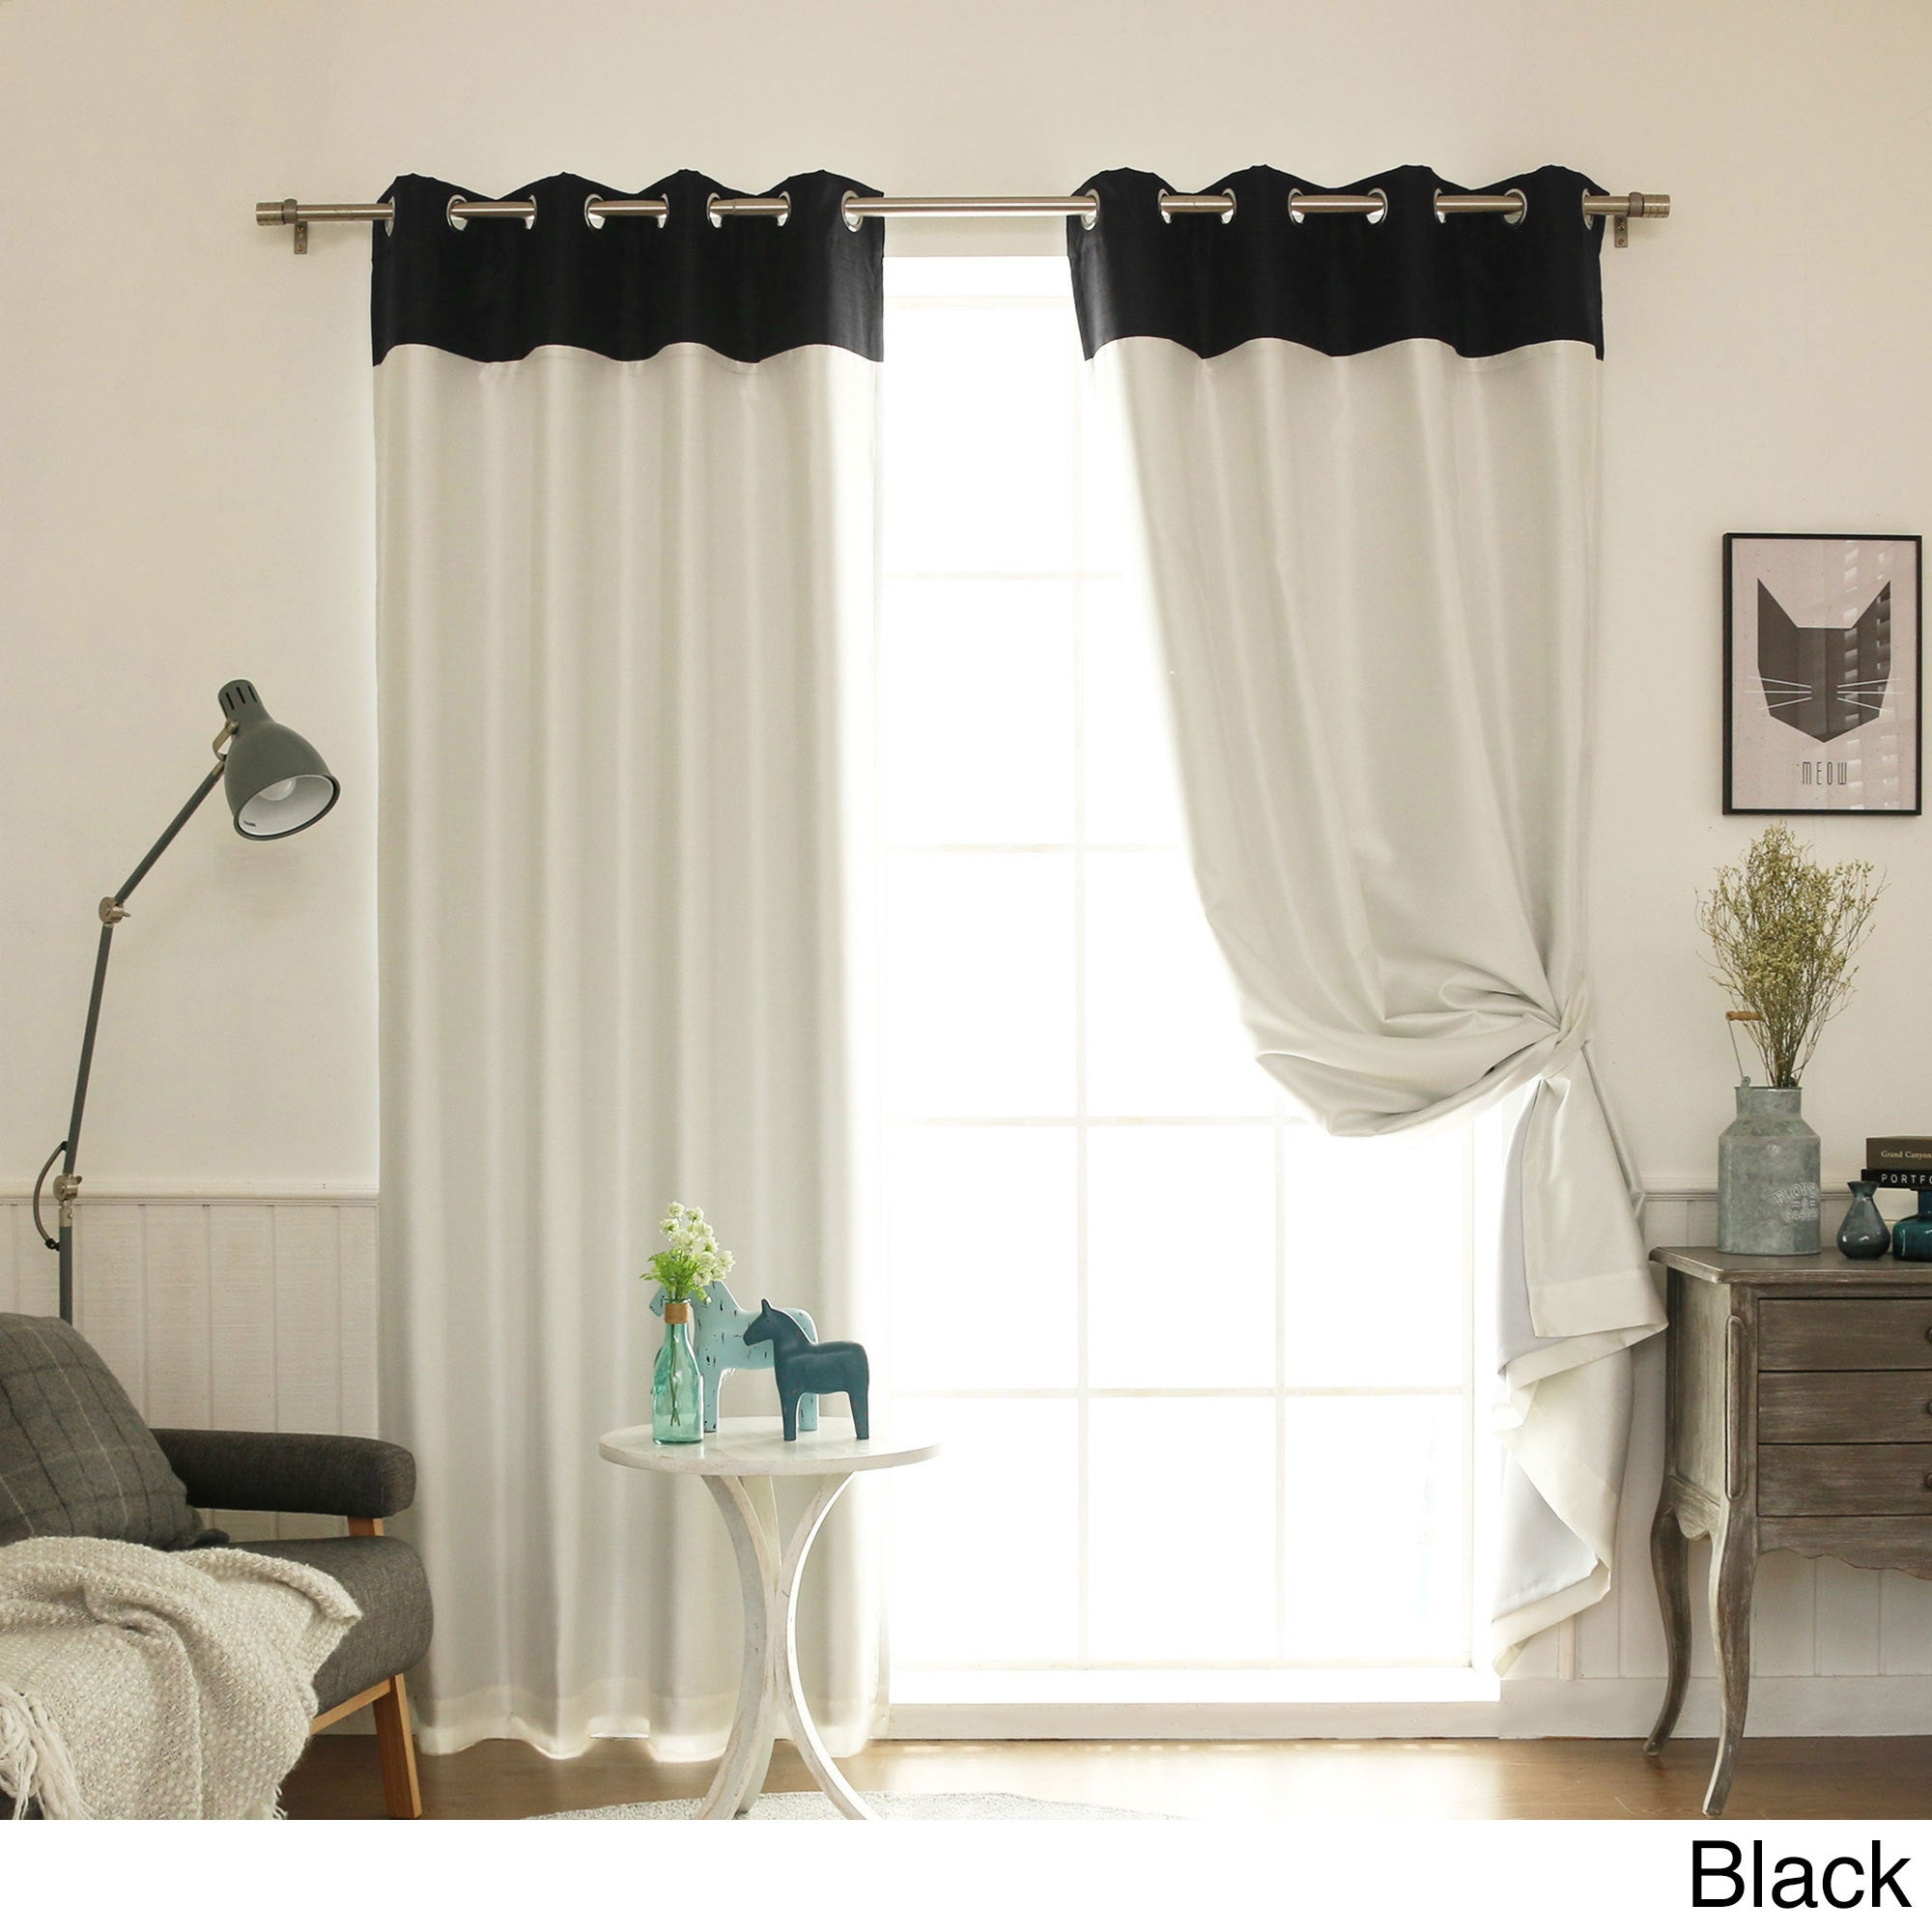 lutron blind blackout black coverings kirbe products mice blinds curtains shades from hi motorization drapery white window sheer and with draperies